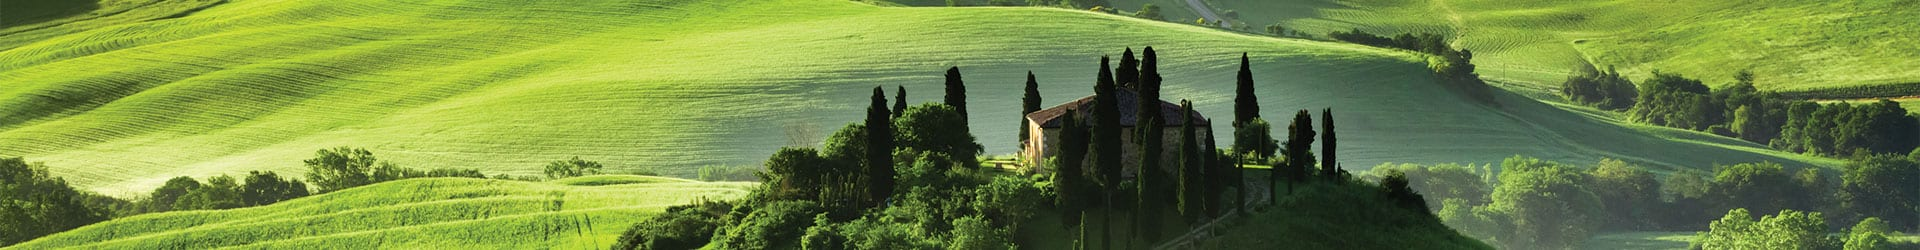 Accommodation Enquiry - Walking Holidays in Tuscany